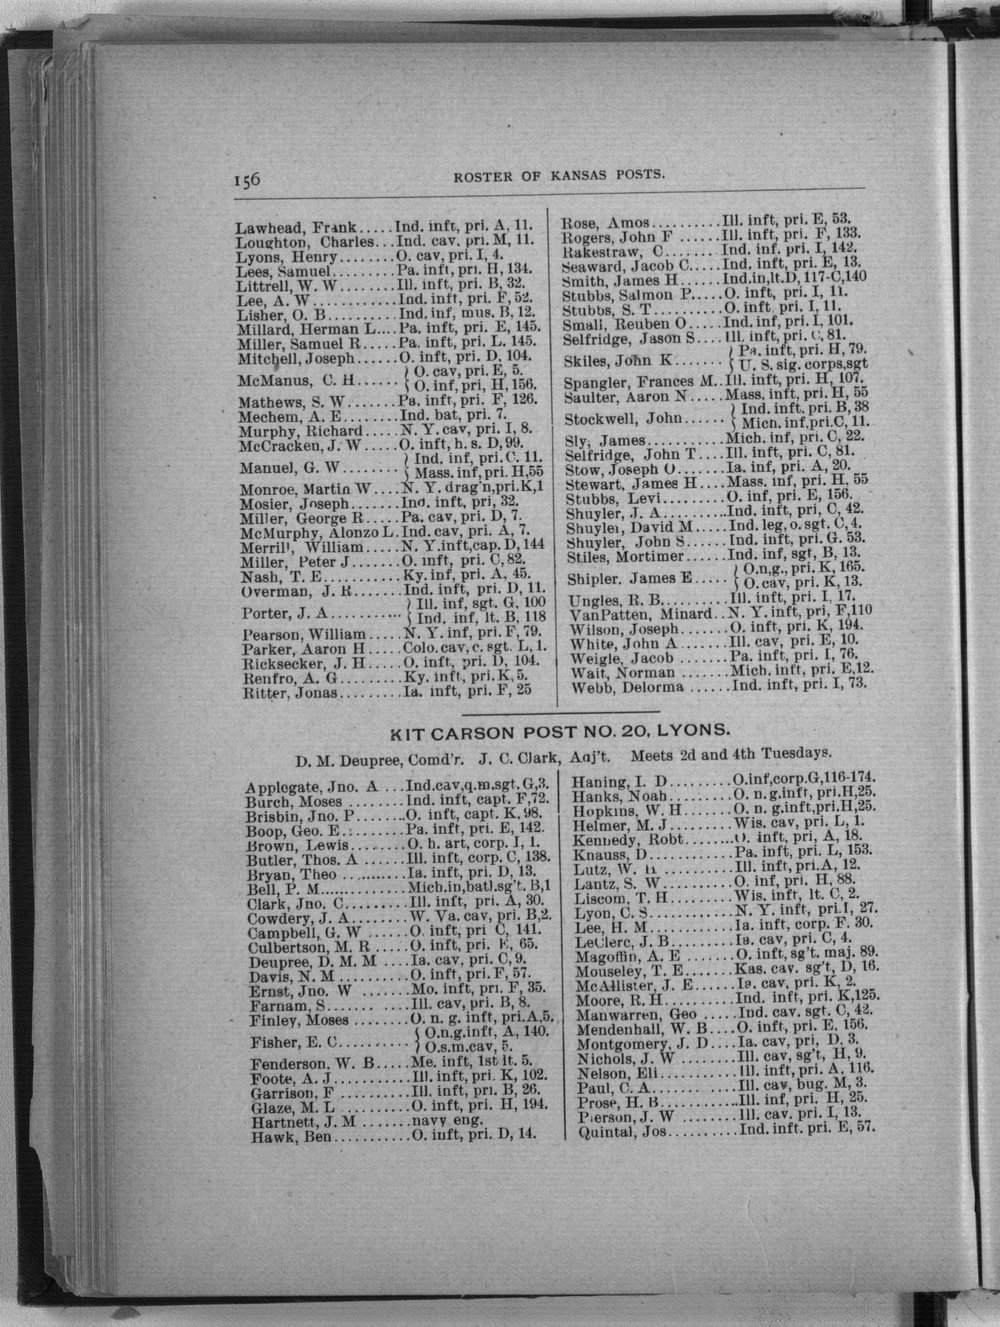 Roster of the members and posts: Grand Army of the Republic, Department of Kansas - 156